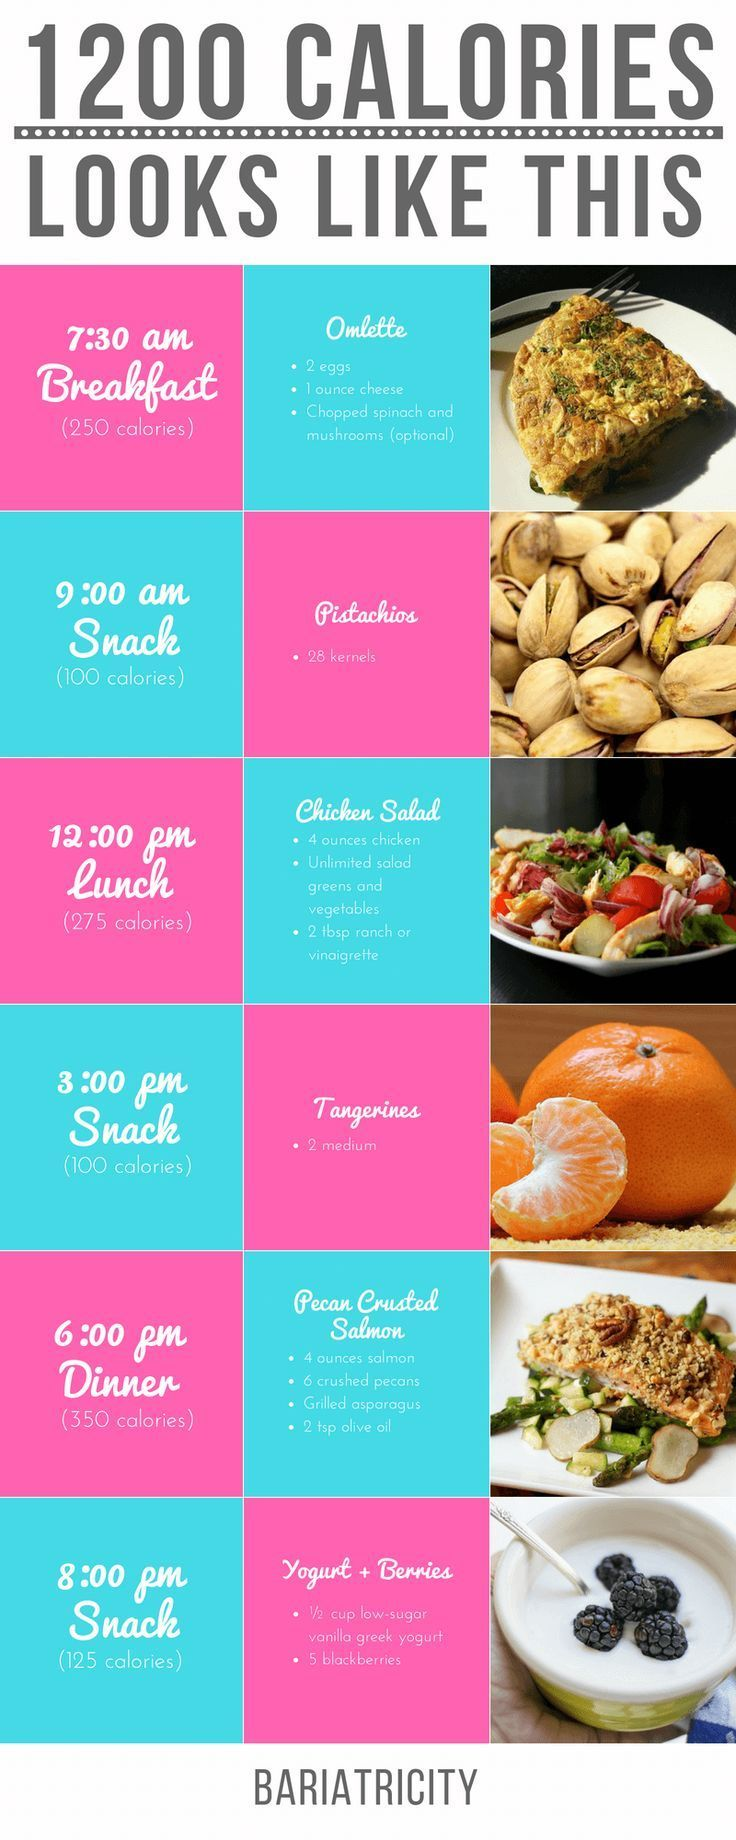 1,200 Calories Looks Like This! [Diet and Meal Plan,  1,200 Calories Looks Like This! [Diet and Meal Plan,